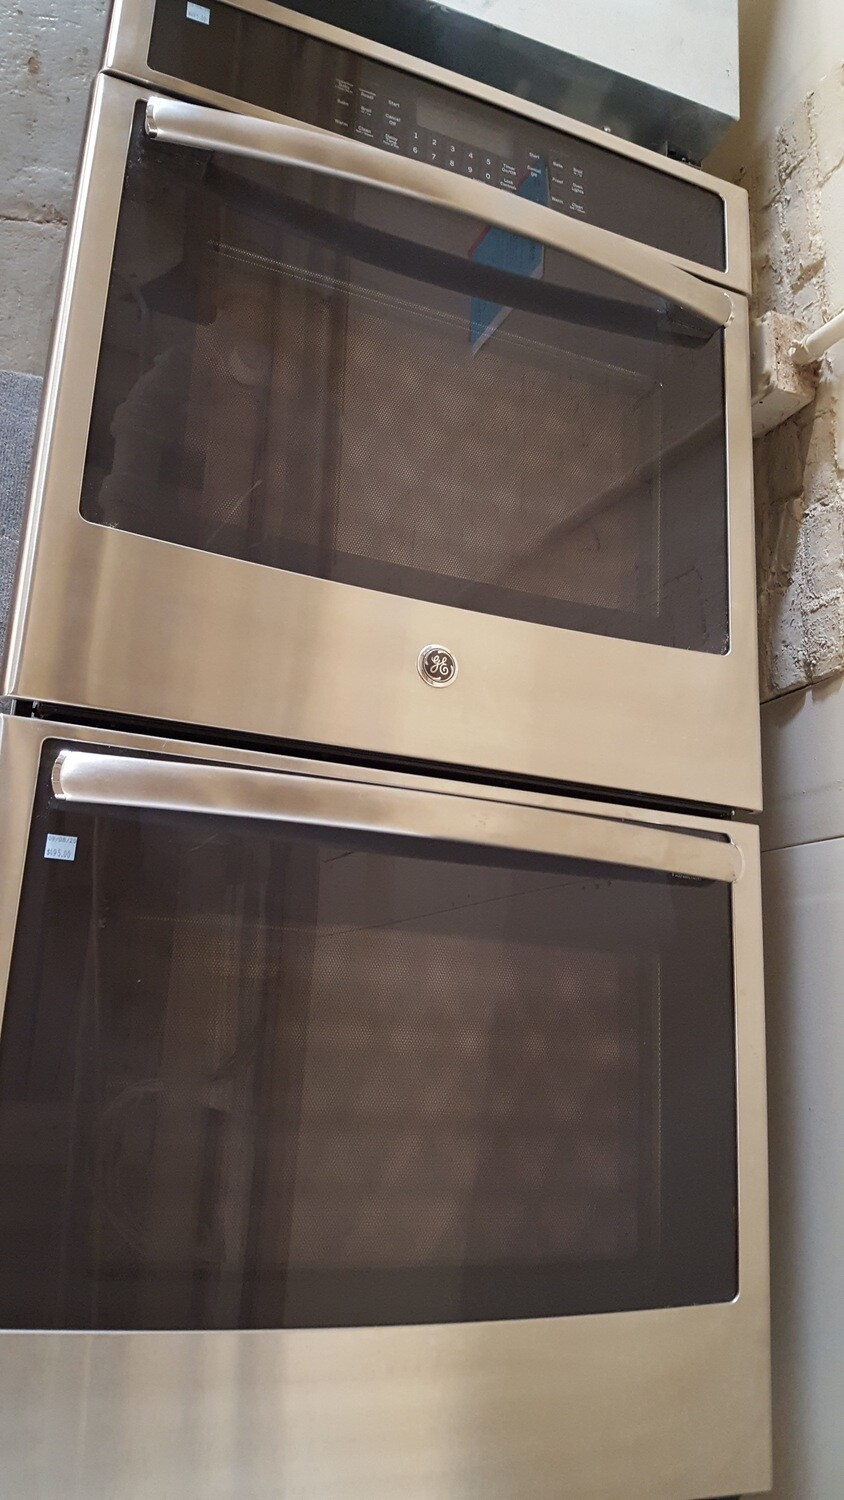 GE Convection Double Wall Oven